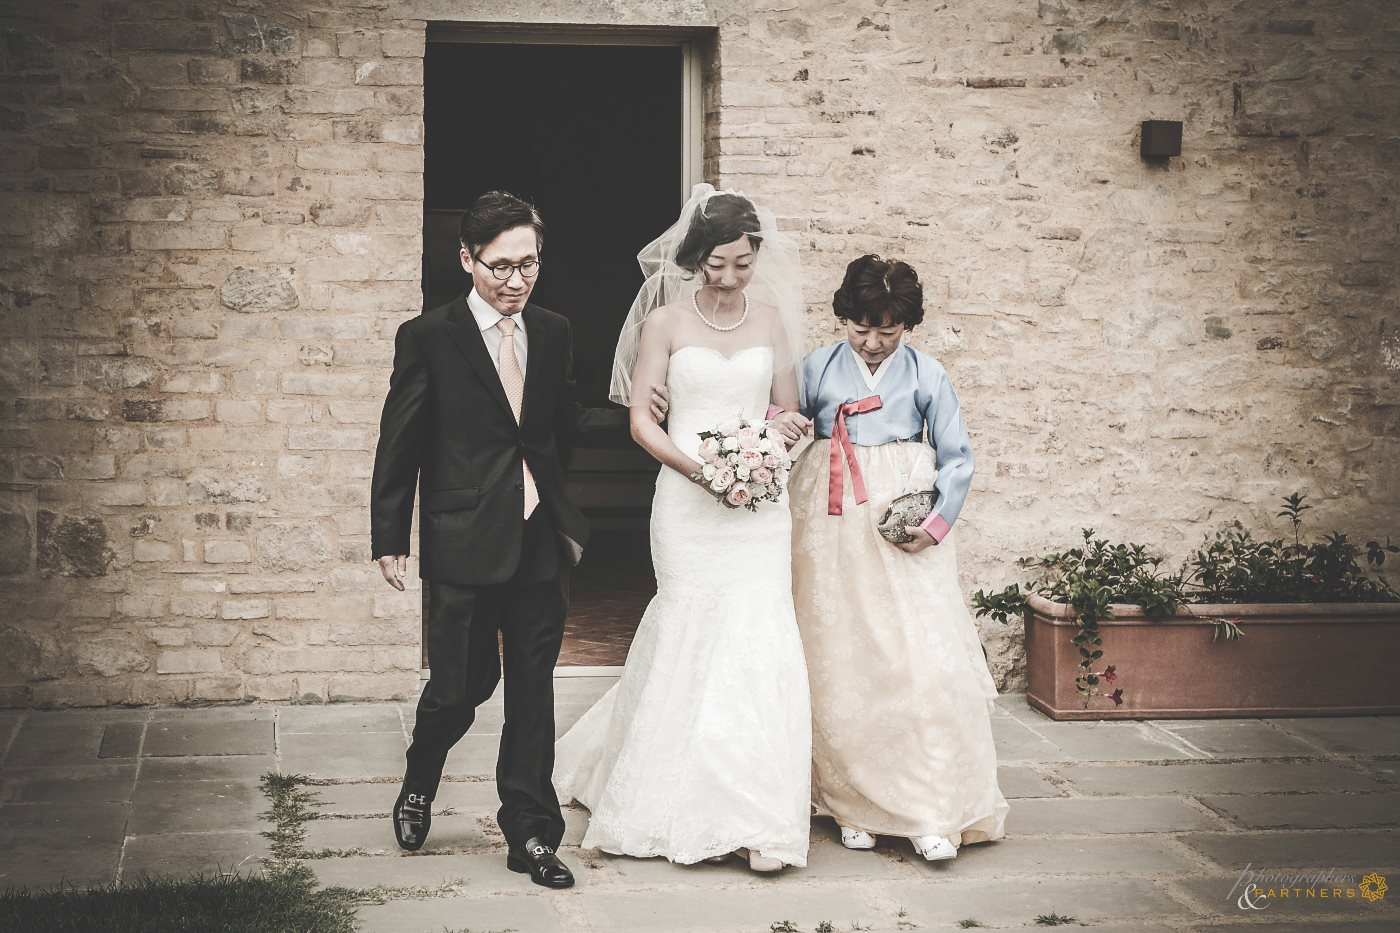 wedding_photos_castelfalfi_06.jpg